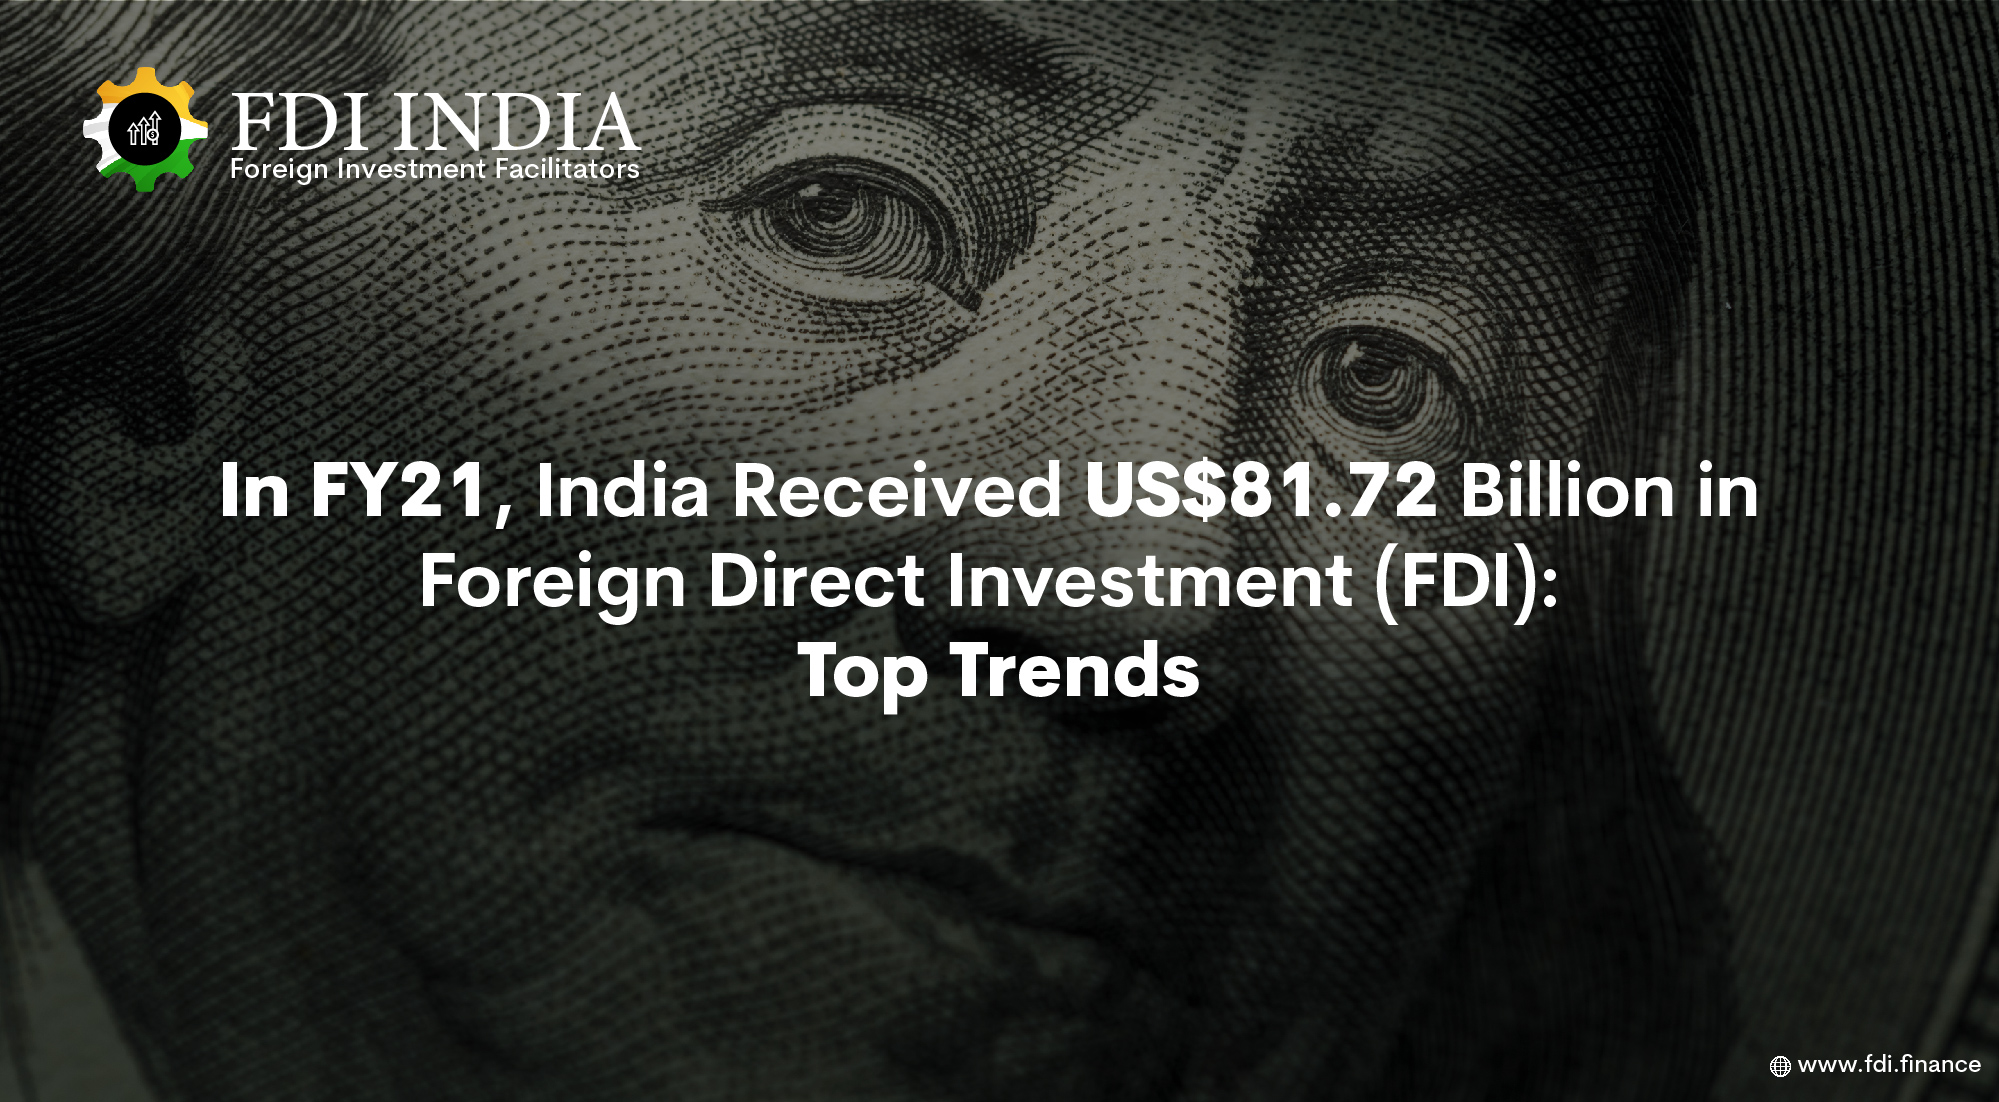 In FY21, India Received US$81.72 Billion in Foreign Direct Investment (FDI): Top Trends